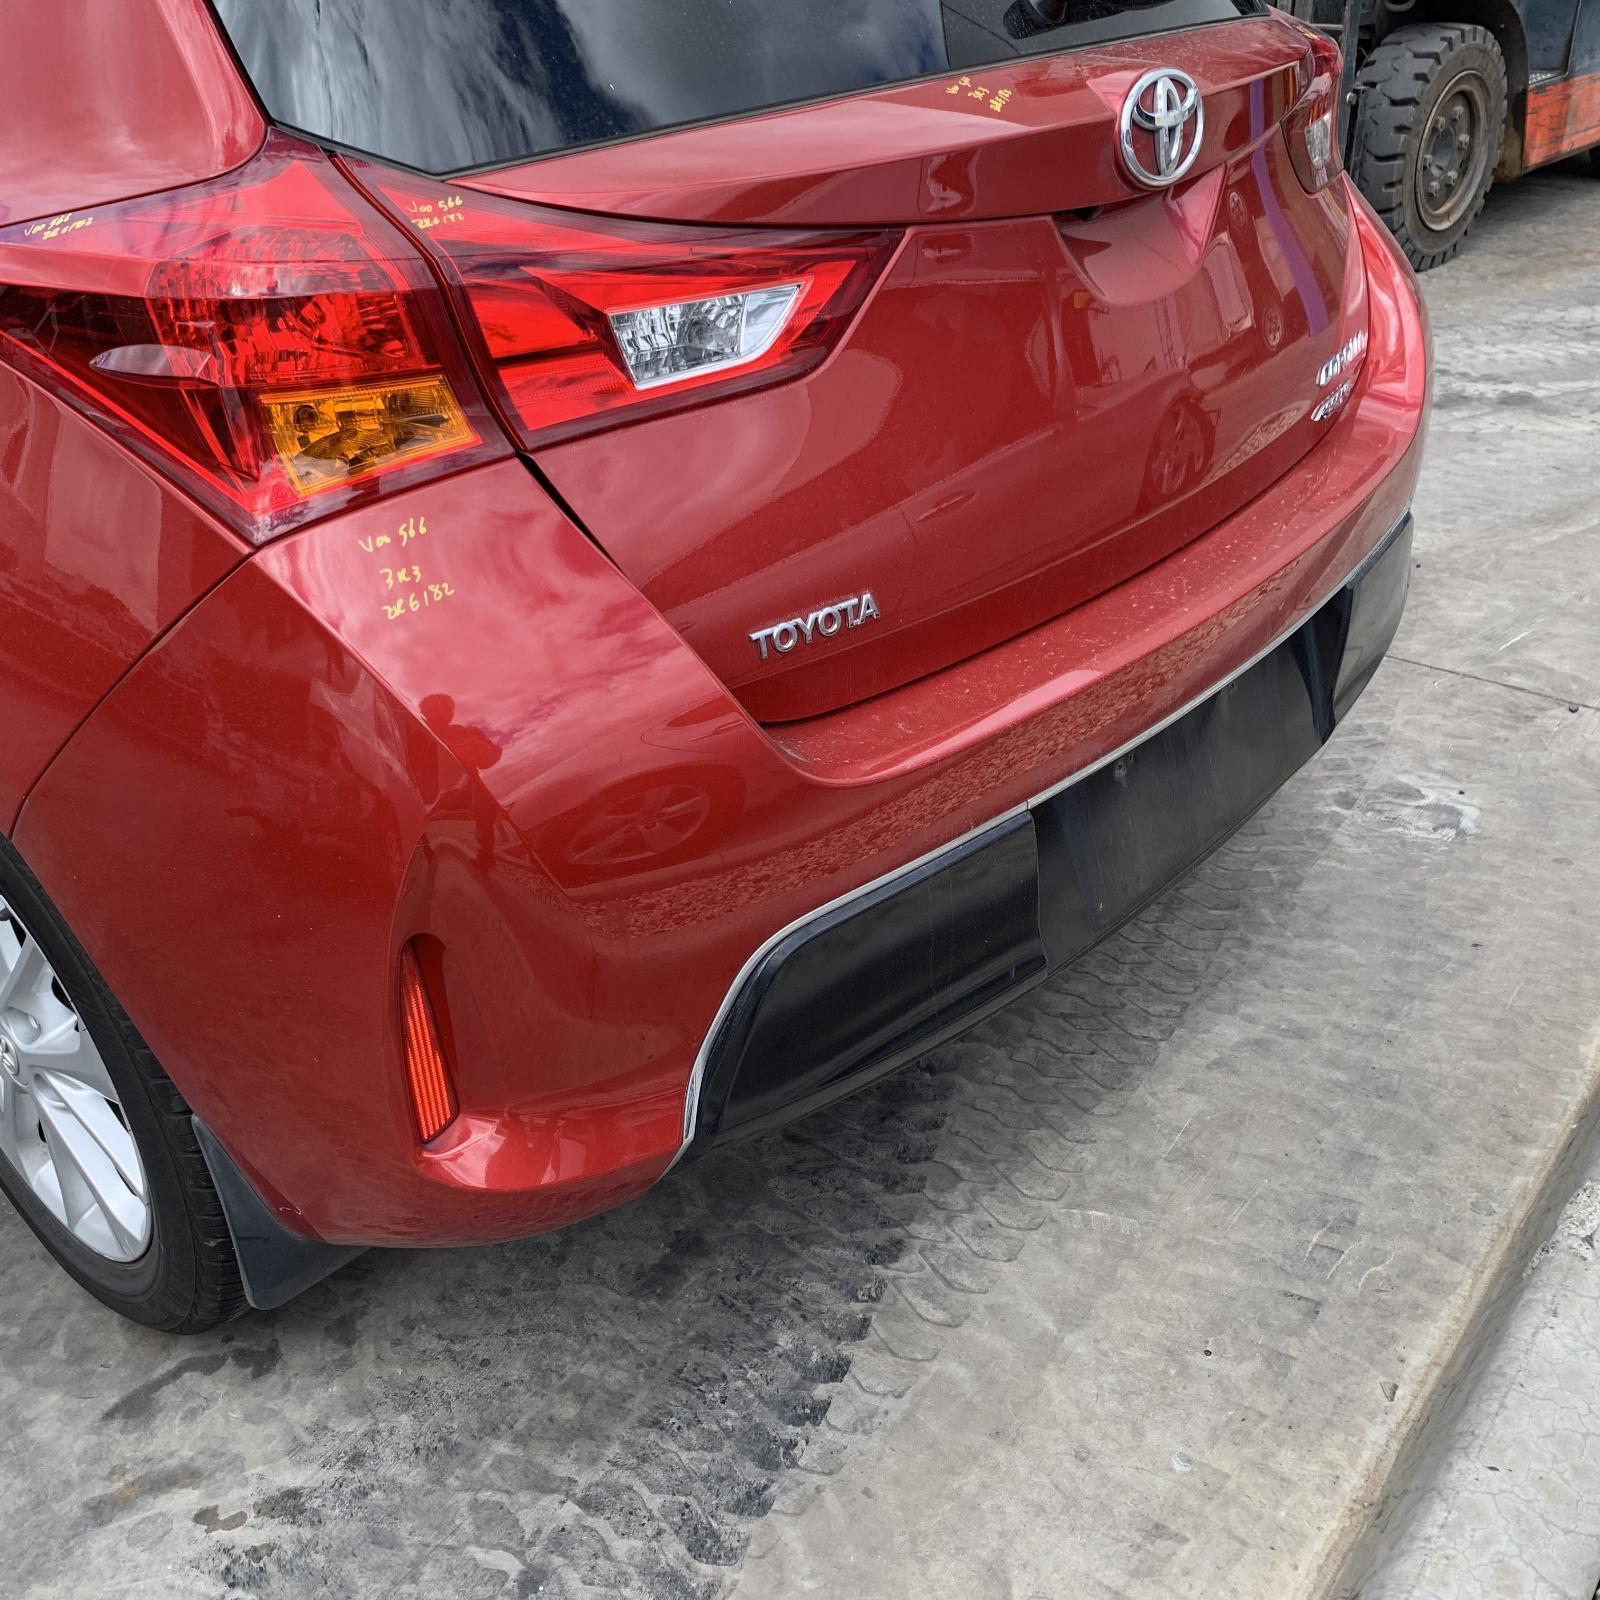 TOYOTA COROLLA, Rear Bumper, ZRE182R, HATCH, LEVIN SX/ZR/ASCENT SPORT, CHROME ON BLACKED OUT SECTION, 10/12-03/15